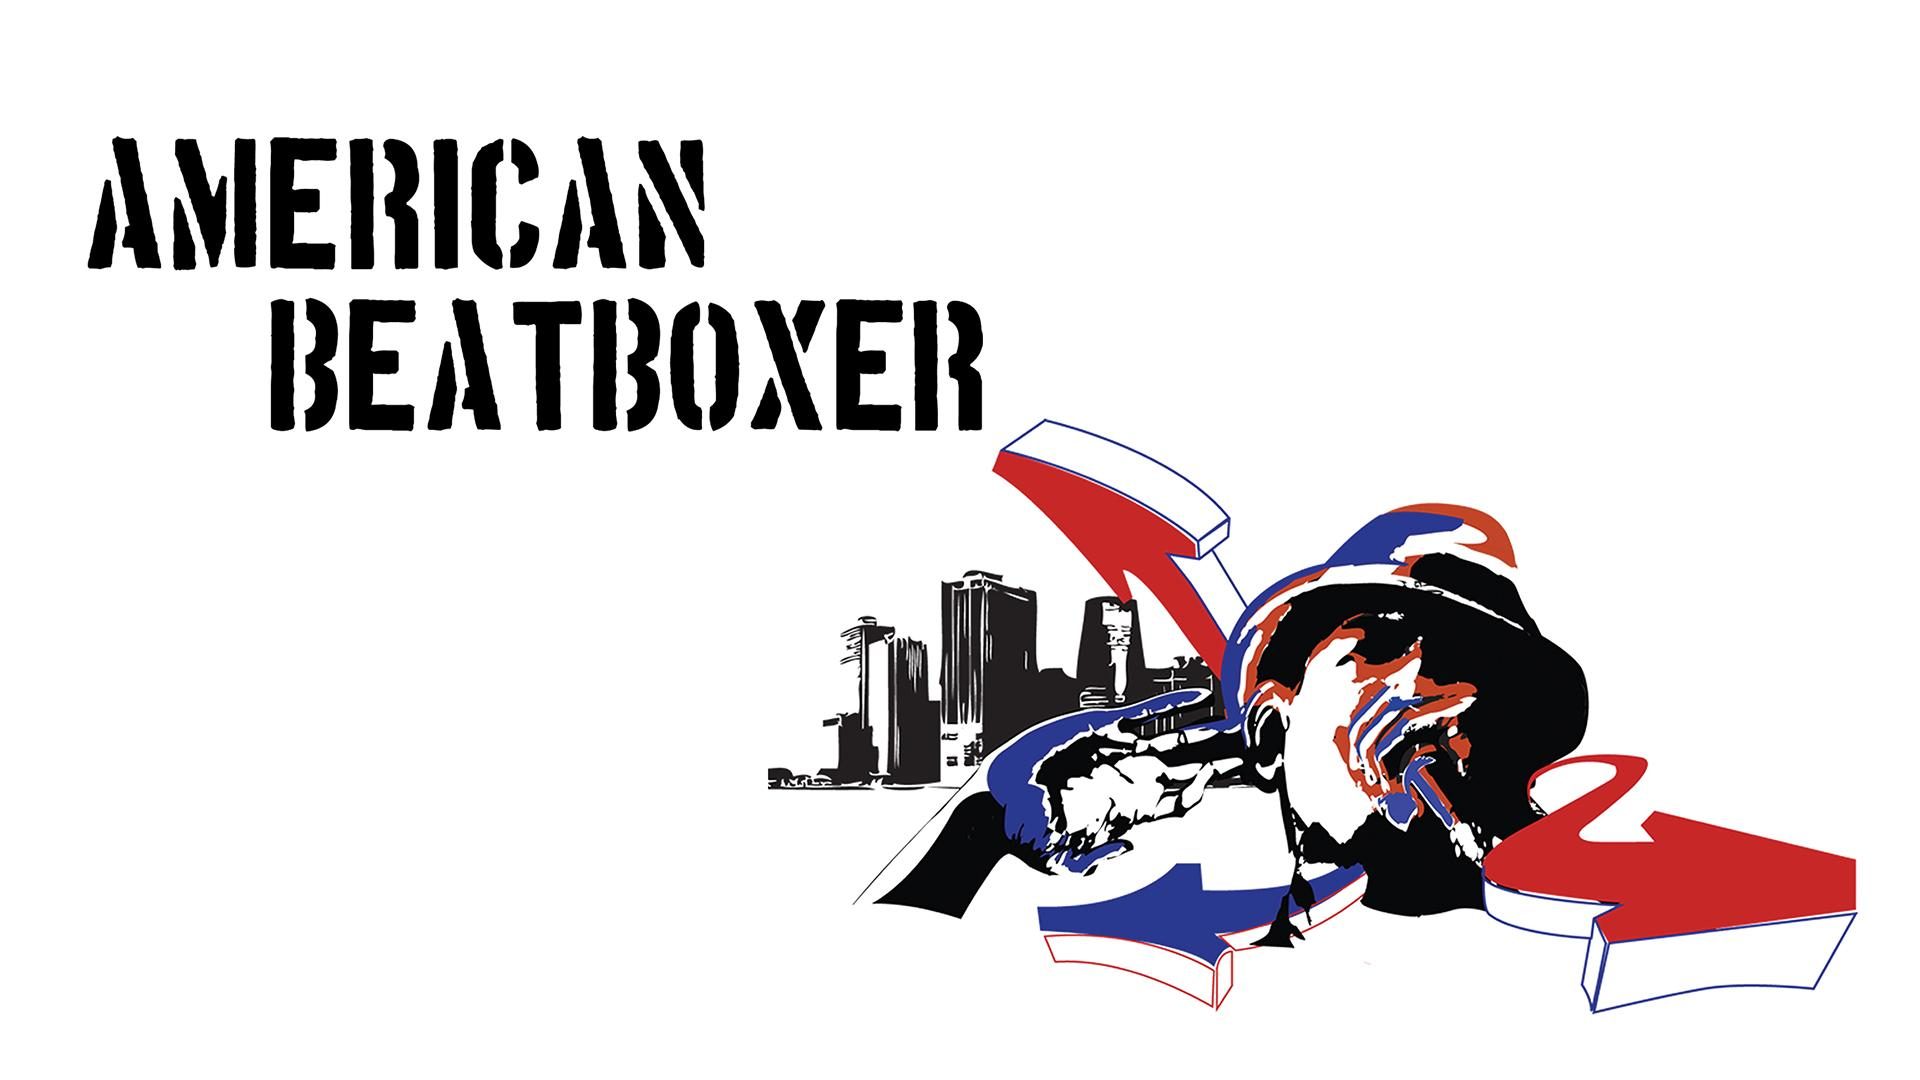 American Beatboxer - Documentary category image